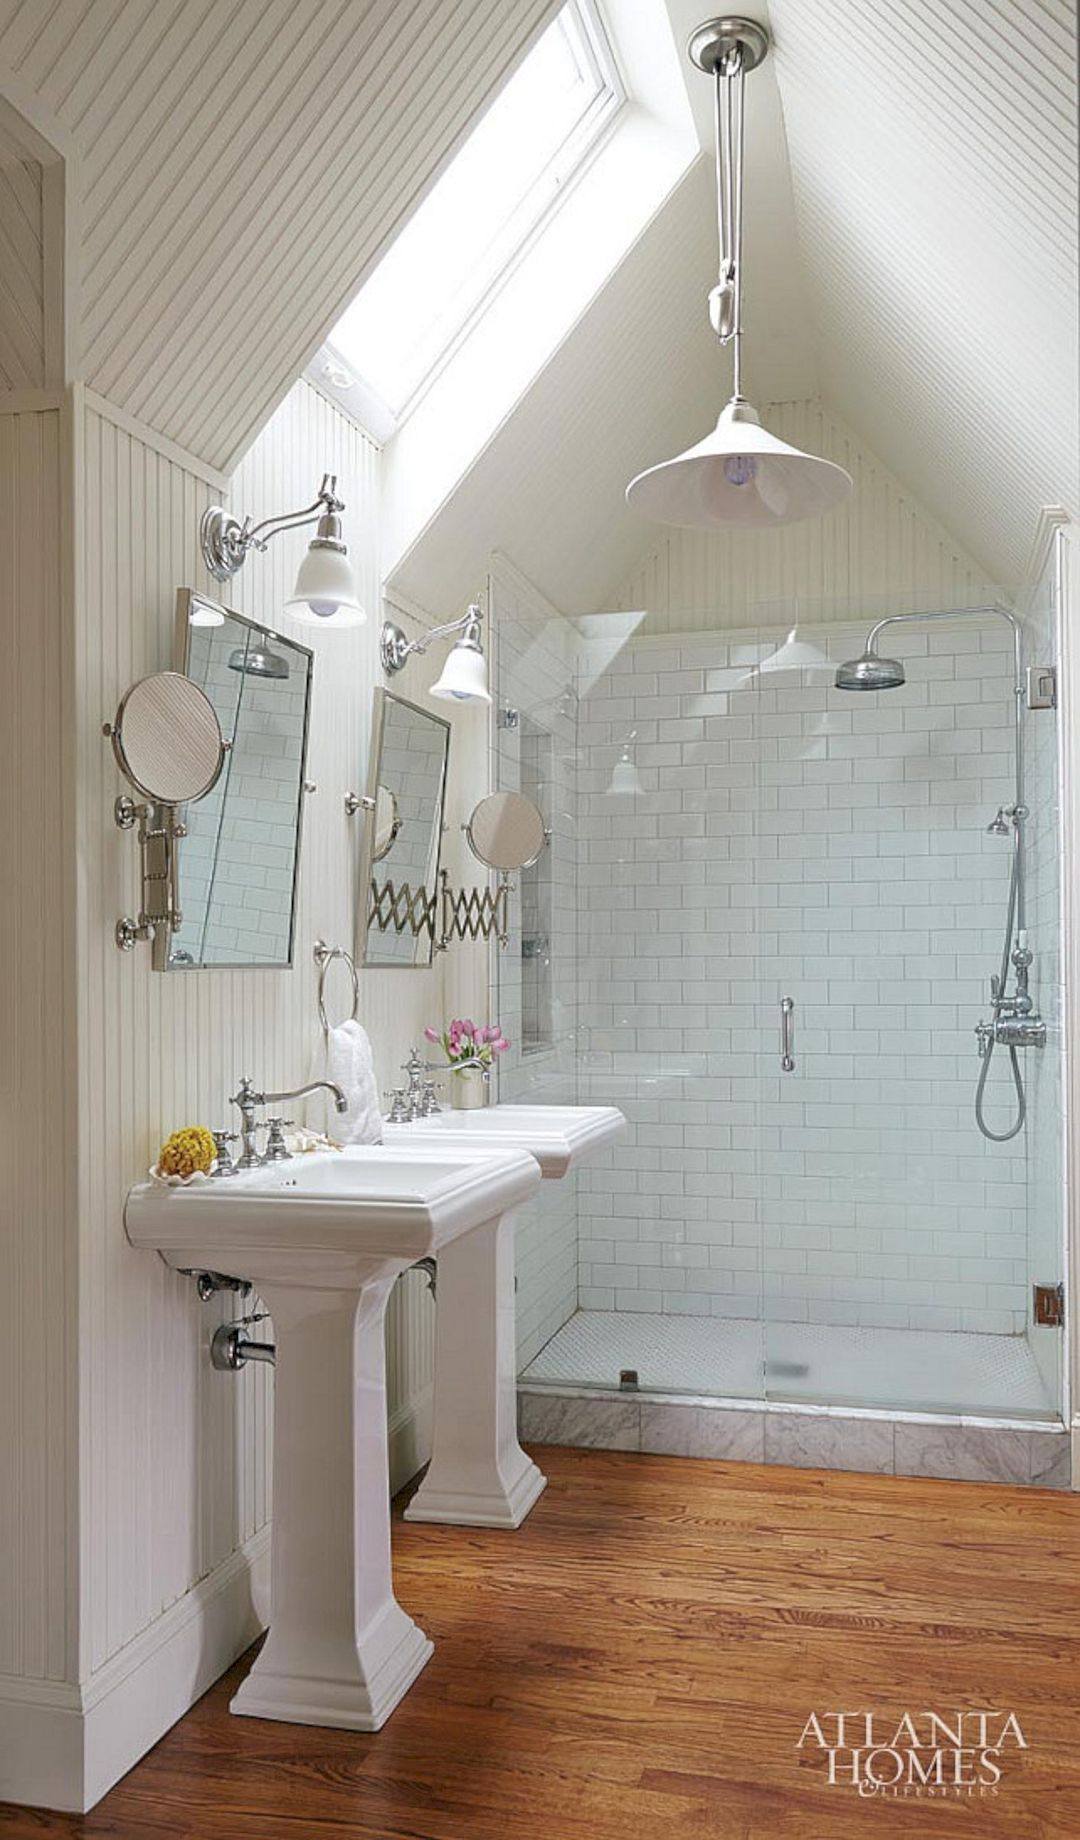 Updated Small Bathroom Designs Html on updated wallpaper designs, updated small kitchens, updated master bedroom designs, updated shower designs, updated laundry room designs, updated office designs,